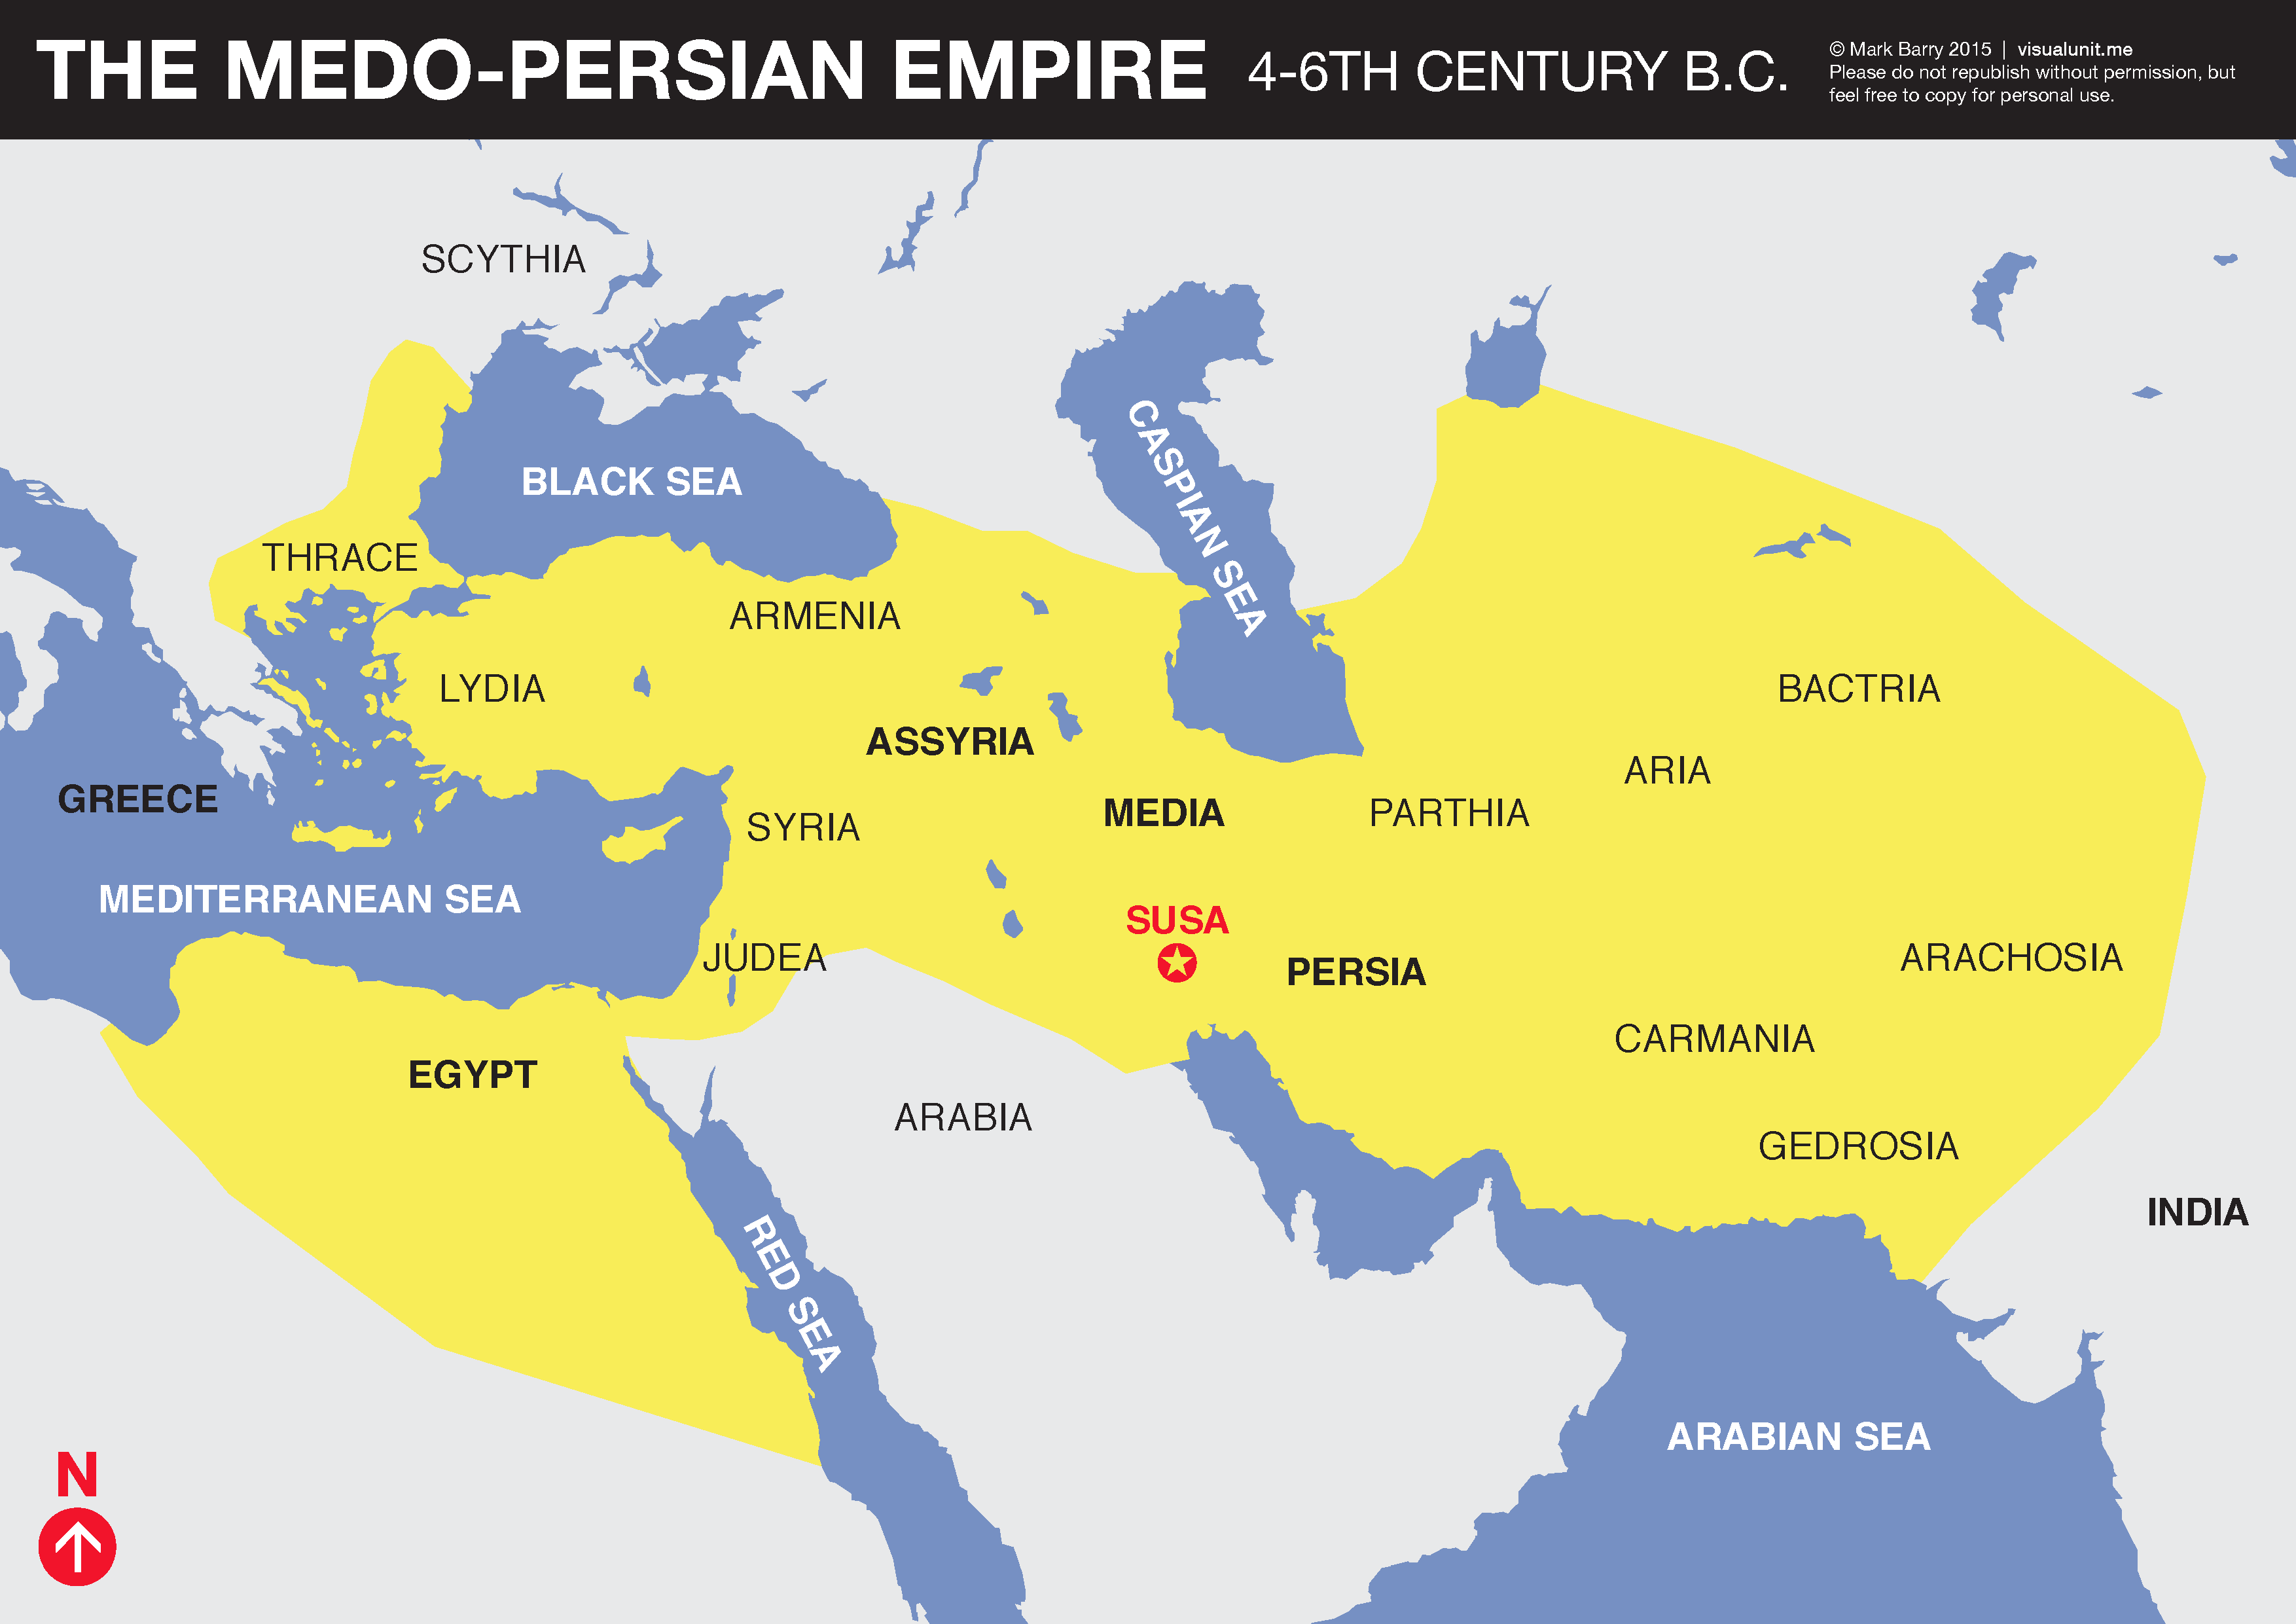 Medo-Persian Empire, 4th-6th Centuries BCE